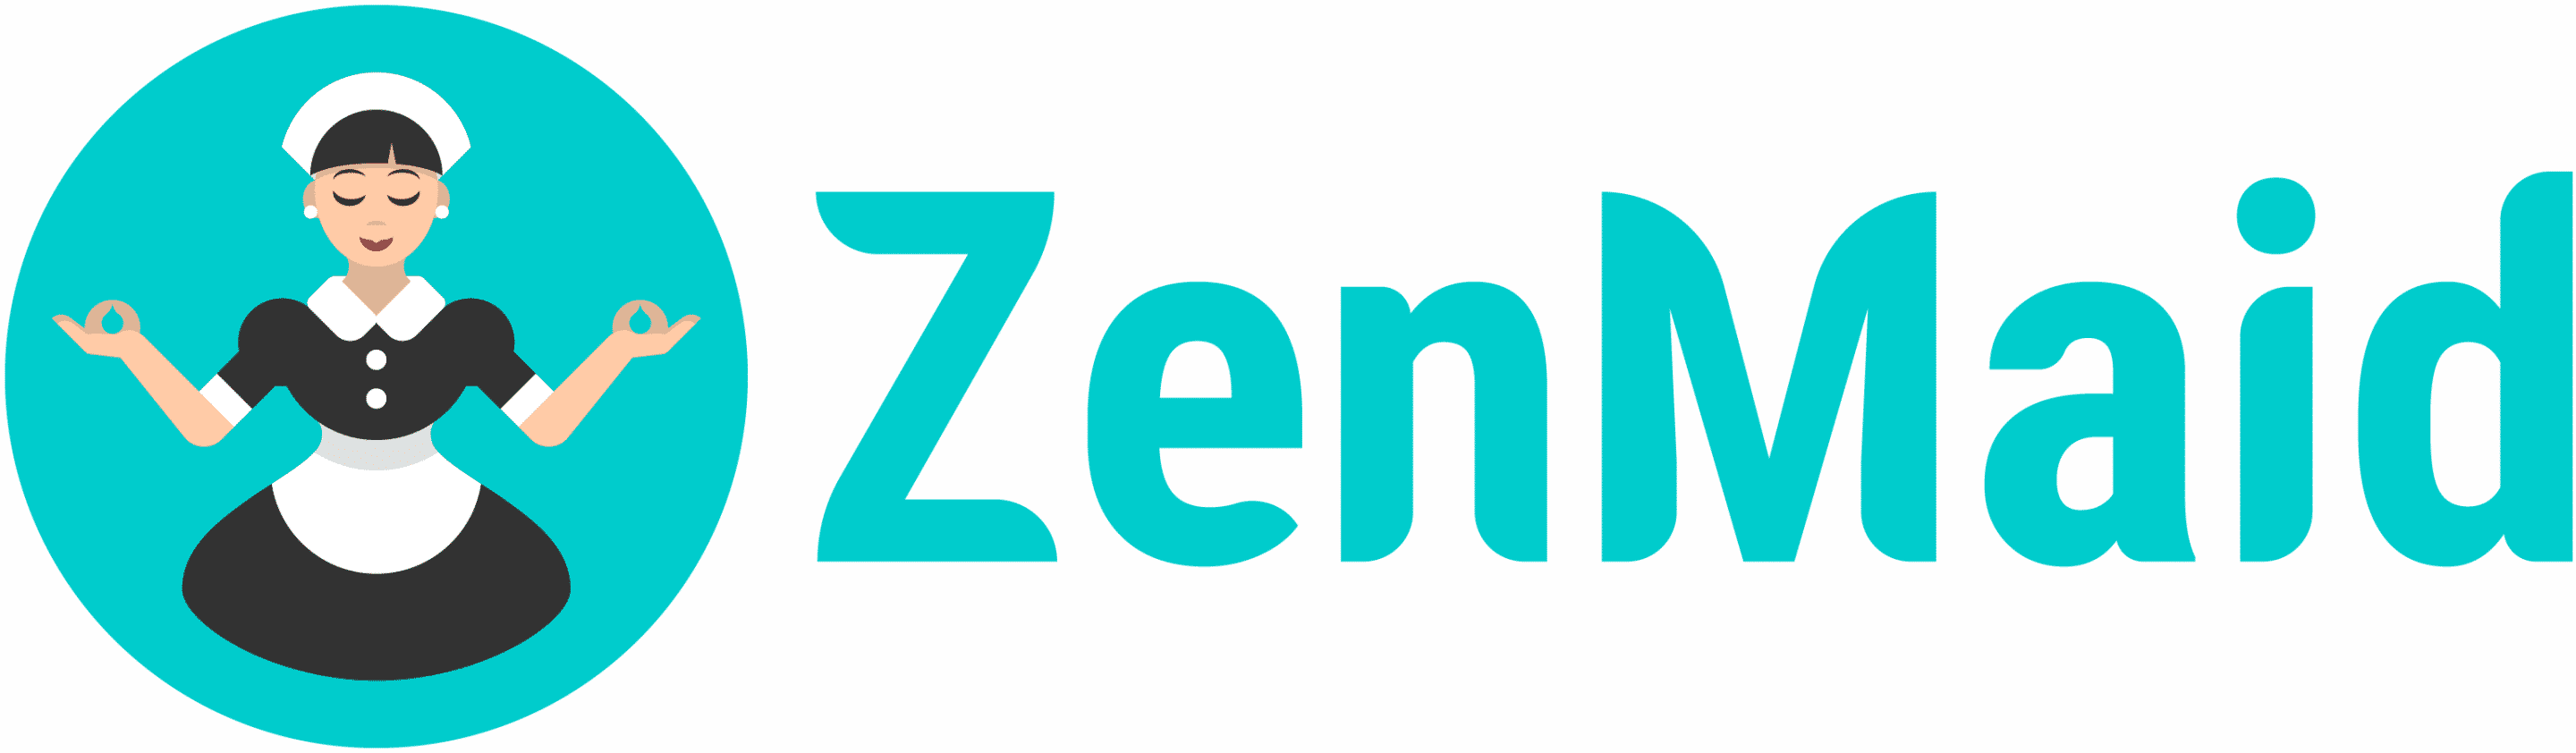 ZenMaid.com Software & Marketing Services